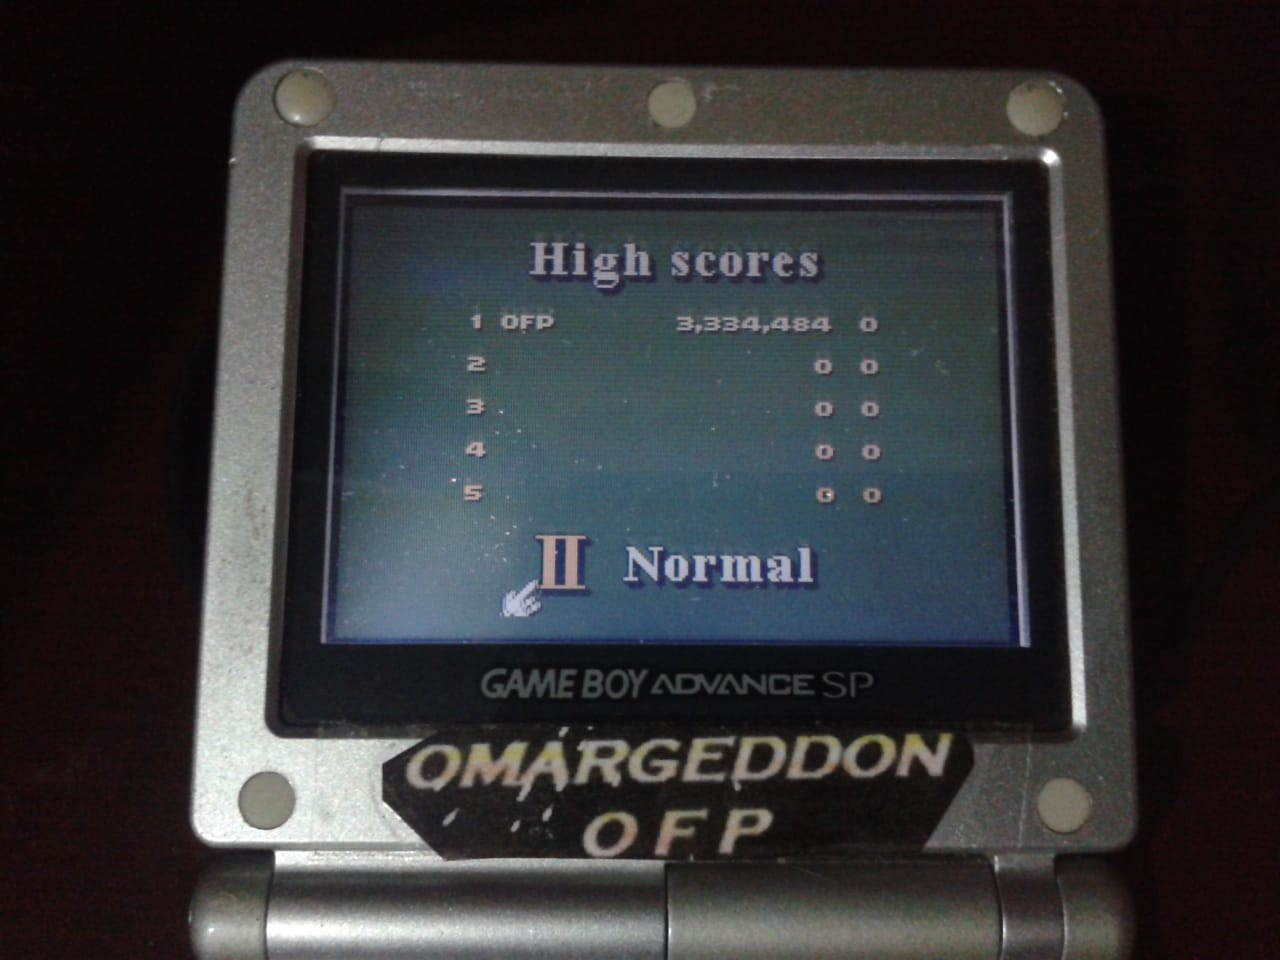 omargeddon: 3D Ultra Pinball Thrillride: Normal (Game Boy Color) 3,334,484 points on 2018-08-05 01:22:24